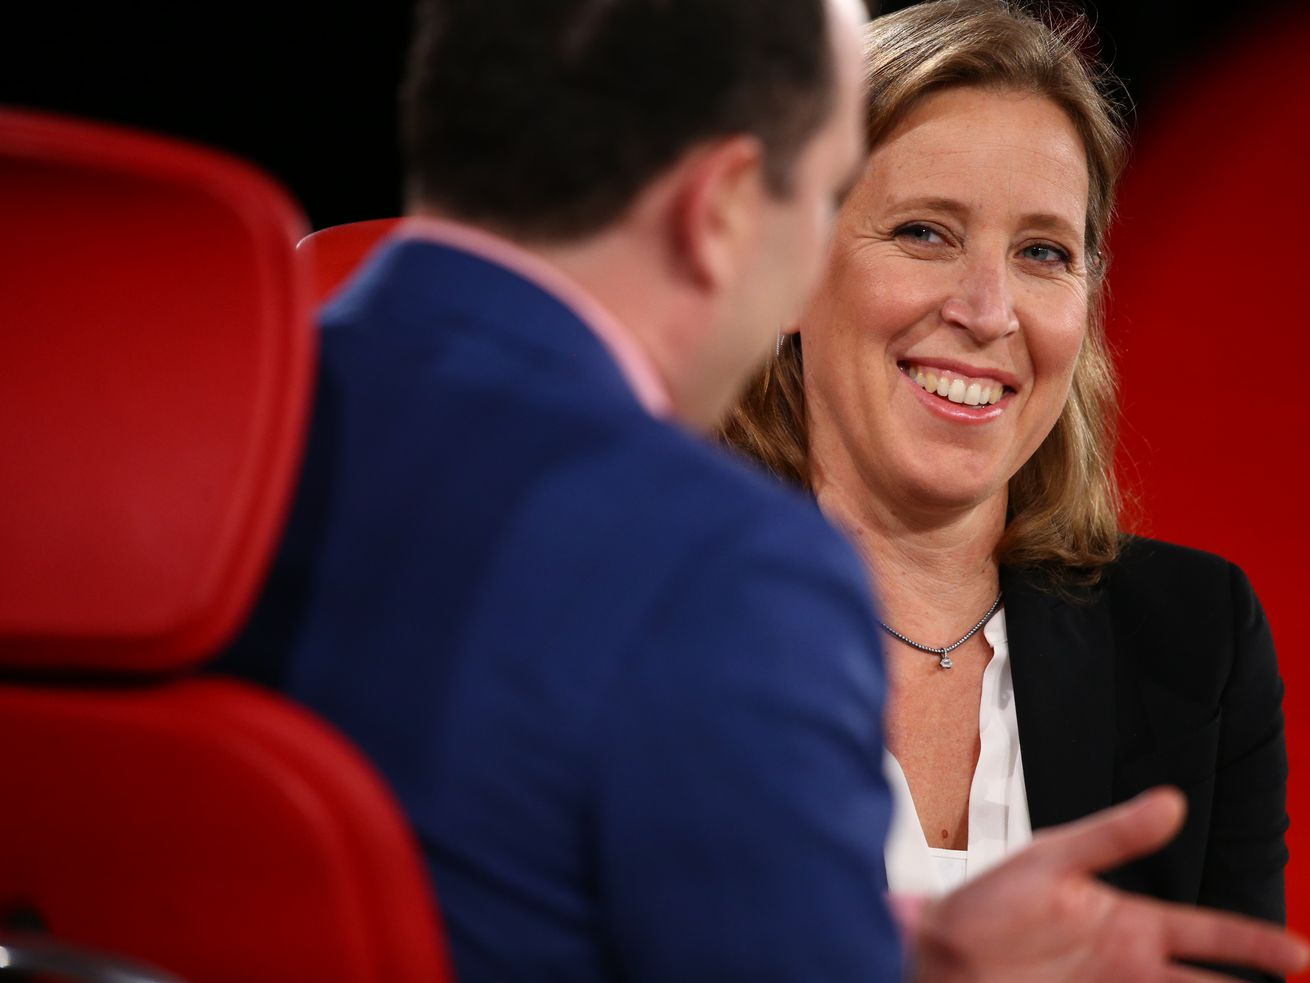 YouTube CEO Susan Wojcicki is at the center of a firestorm over the platform's handling of a Vox journalist's harassment.